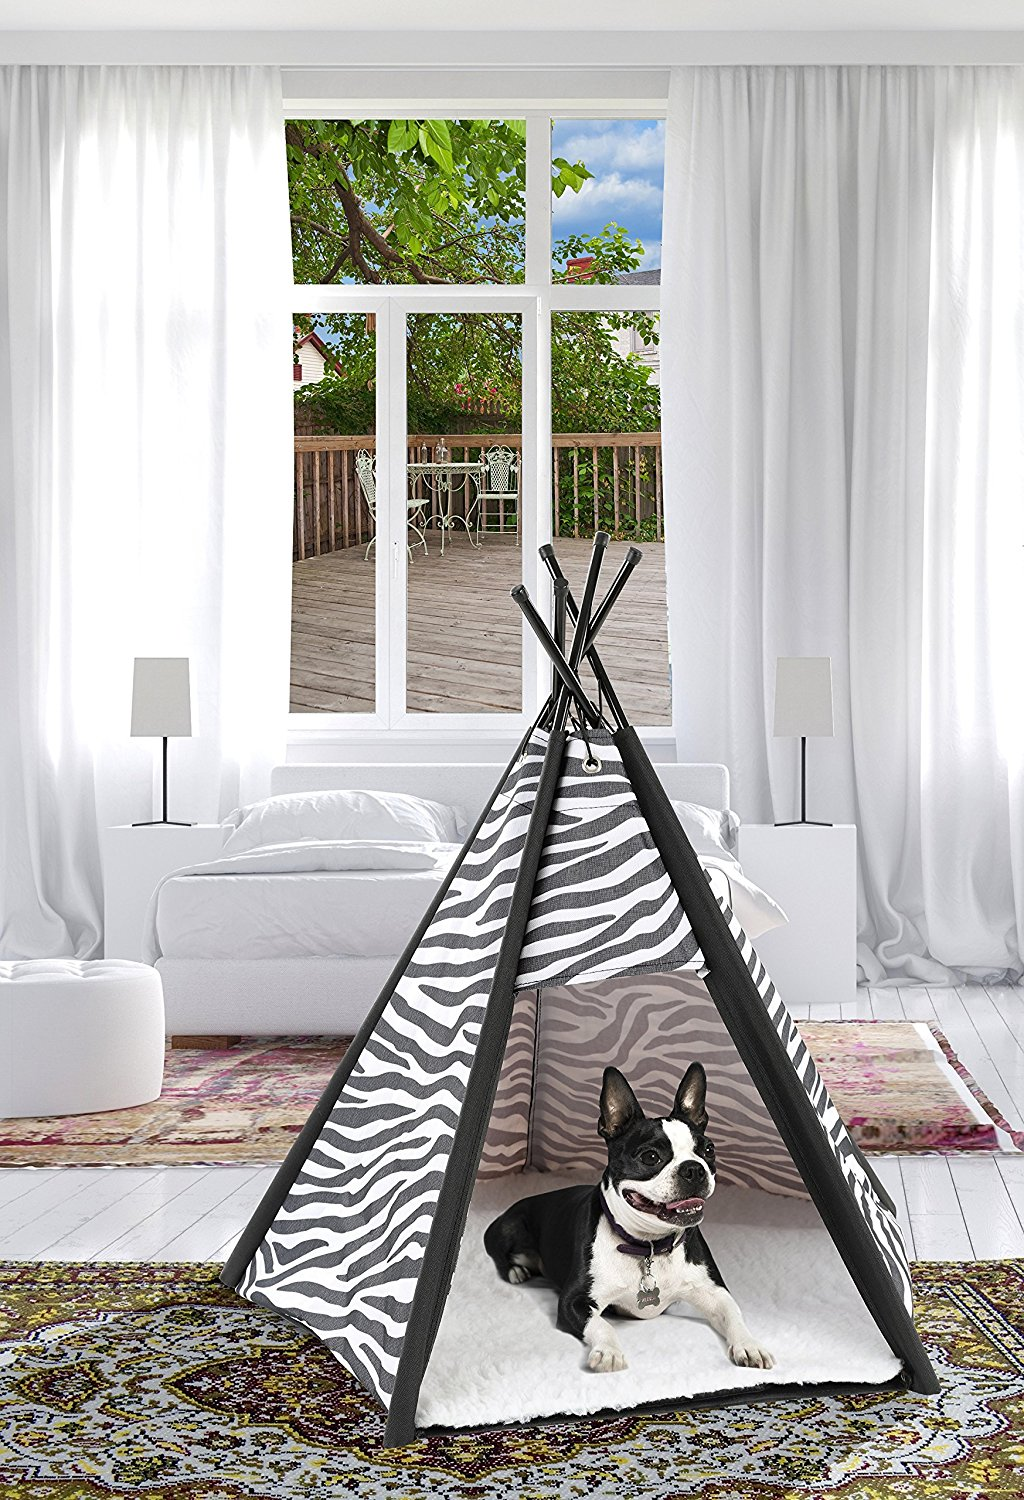 etna-portable-lightweight-teepee-pet-tent  sc 1 st  Pet Cages & etna-portable-lightweight-teepee-pet-tent u2013 All Pet Cages